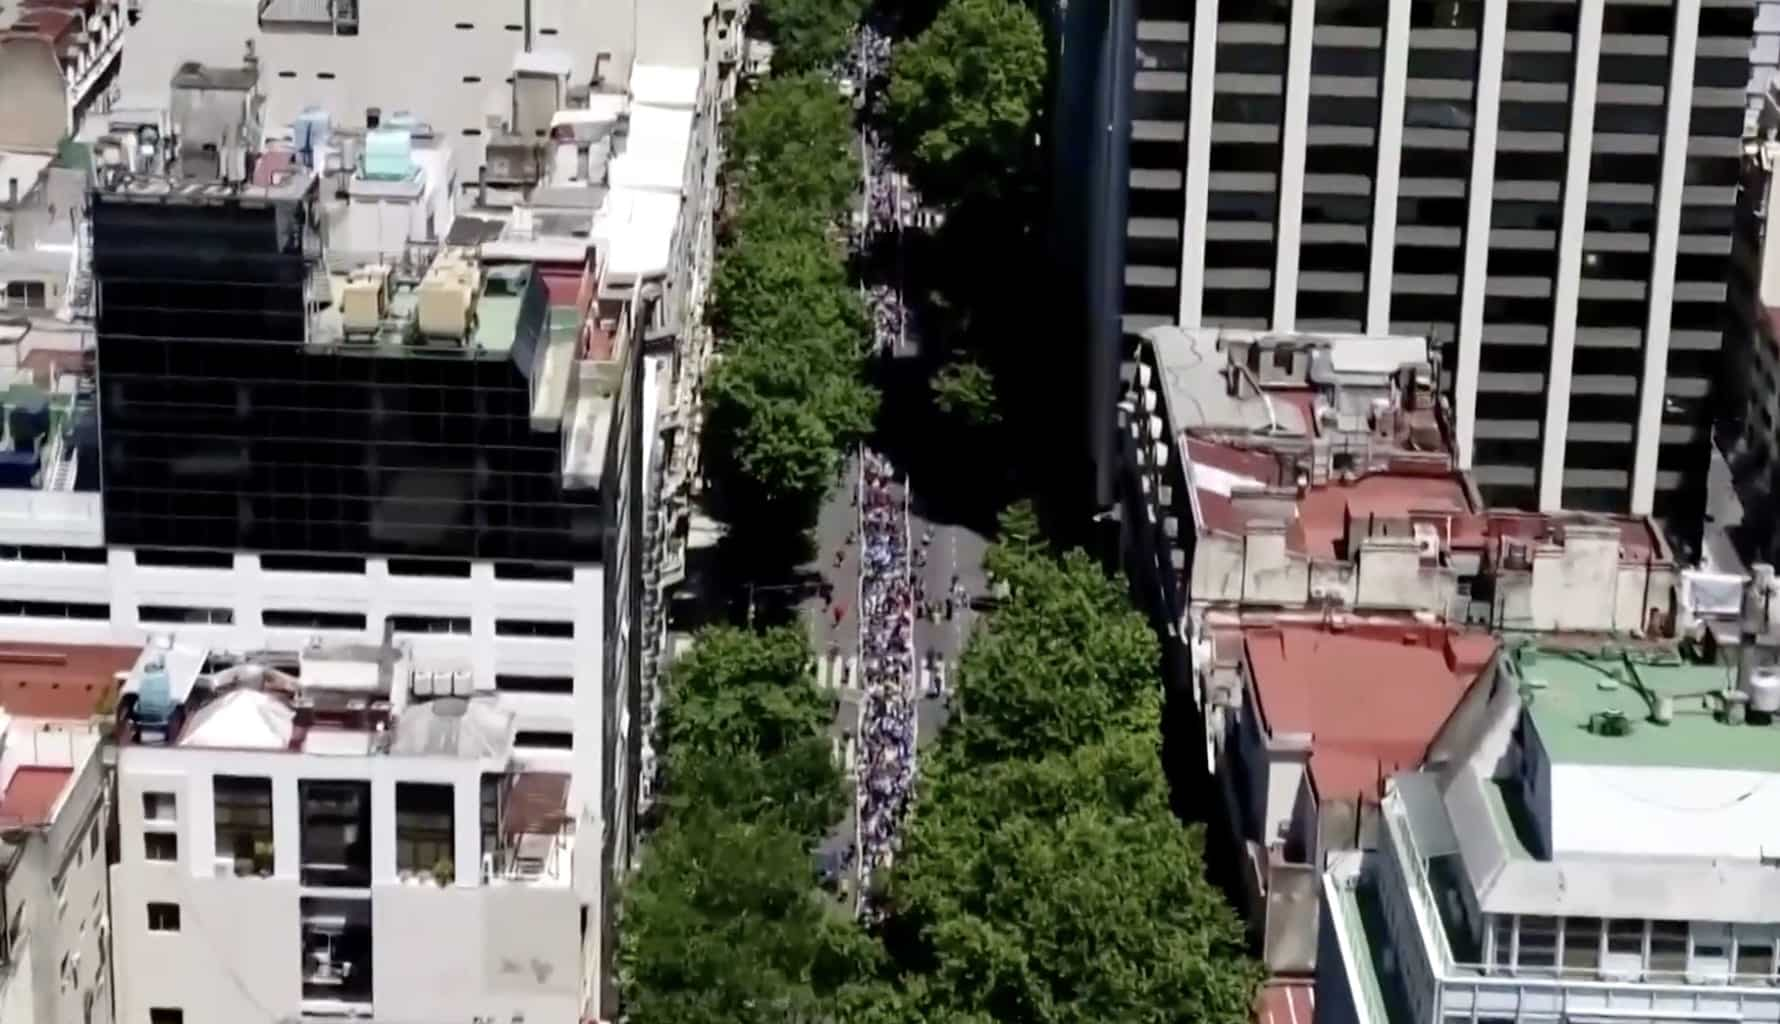 Drone video shows crowds paying respect to soccer legend Maradona